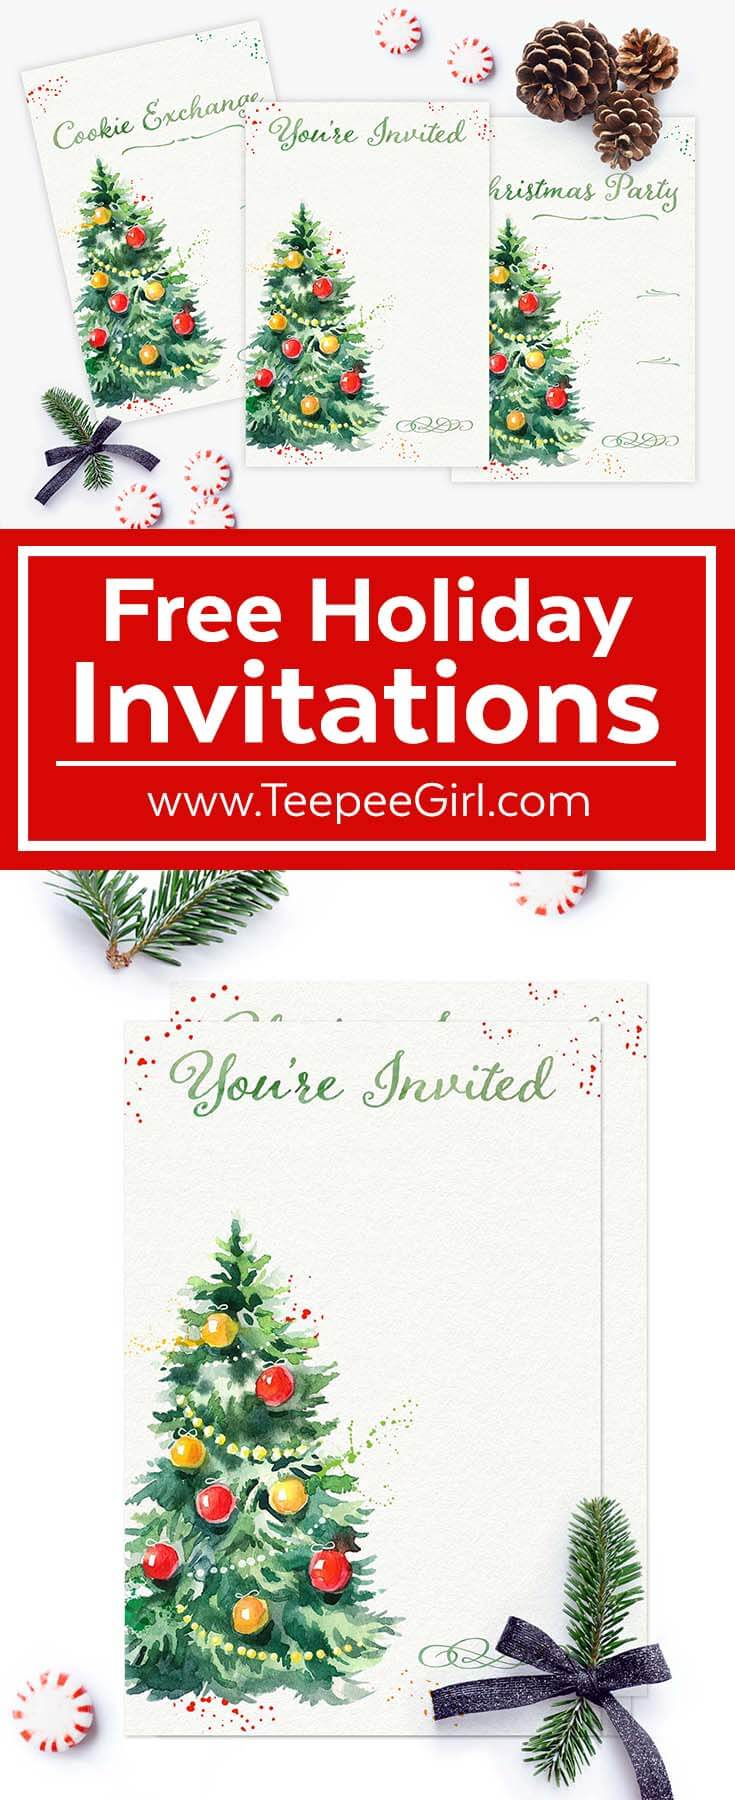 holiday invitations teepee girl new years s eve printable 29 2016in printables